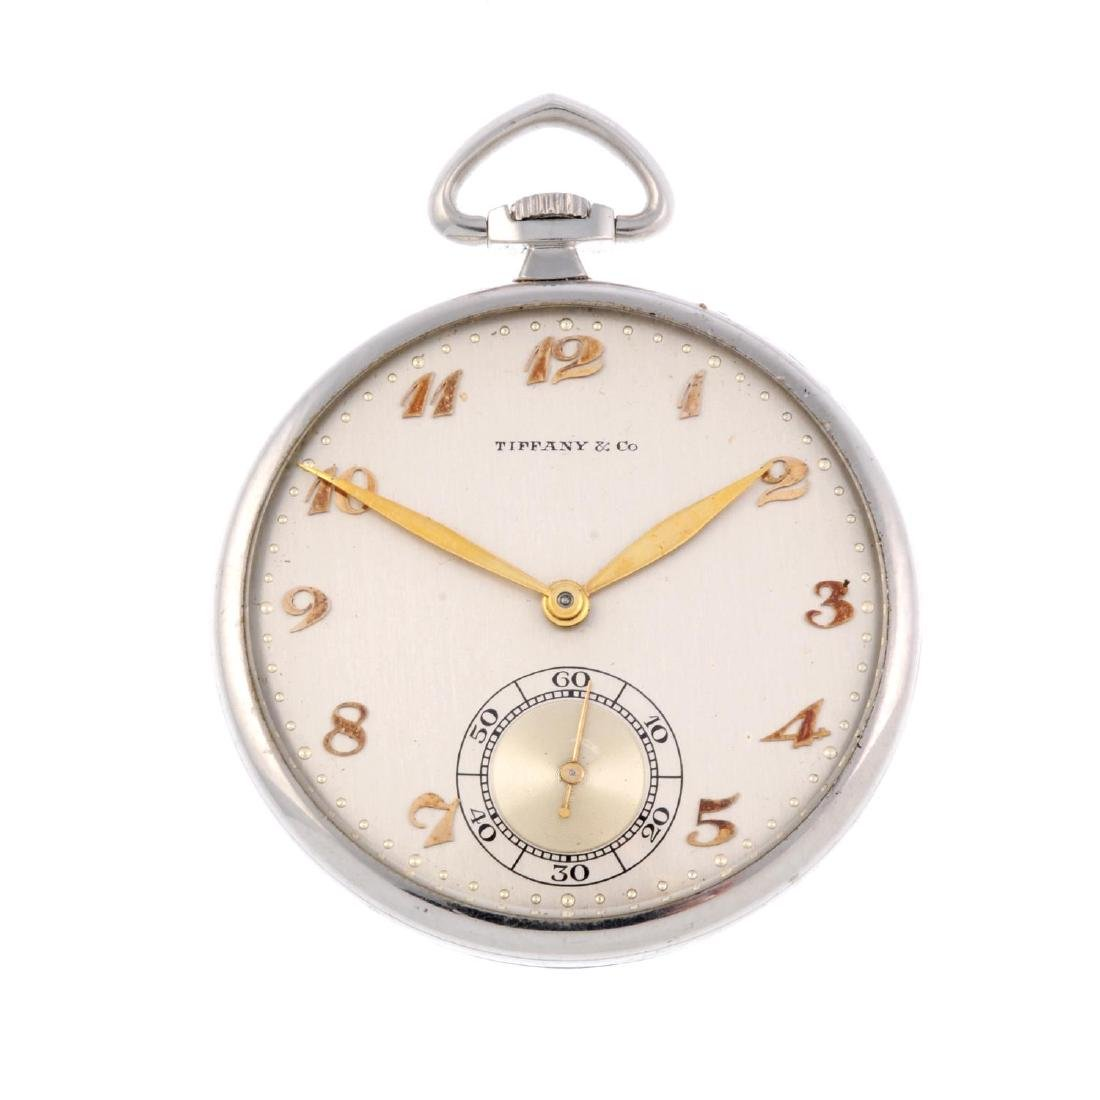 An open face pocket watch by Tiffany & Co. White metal